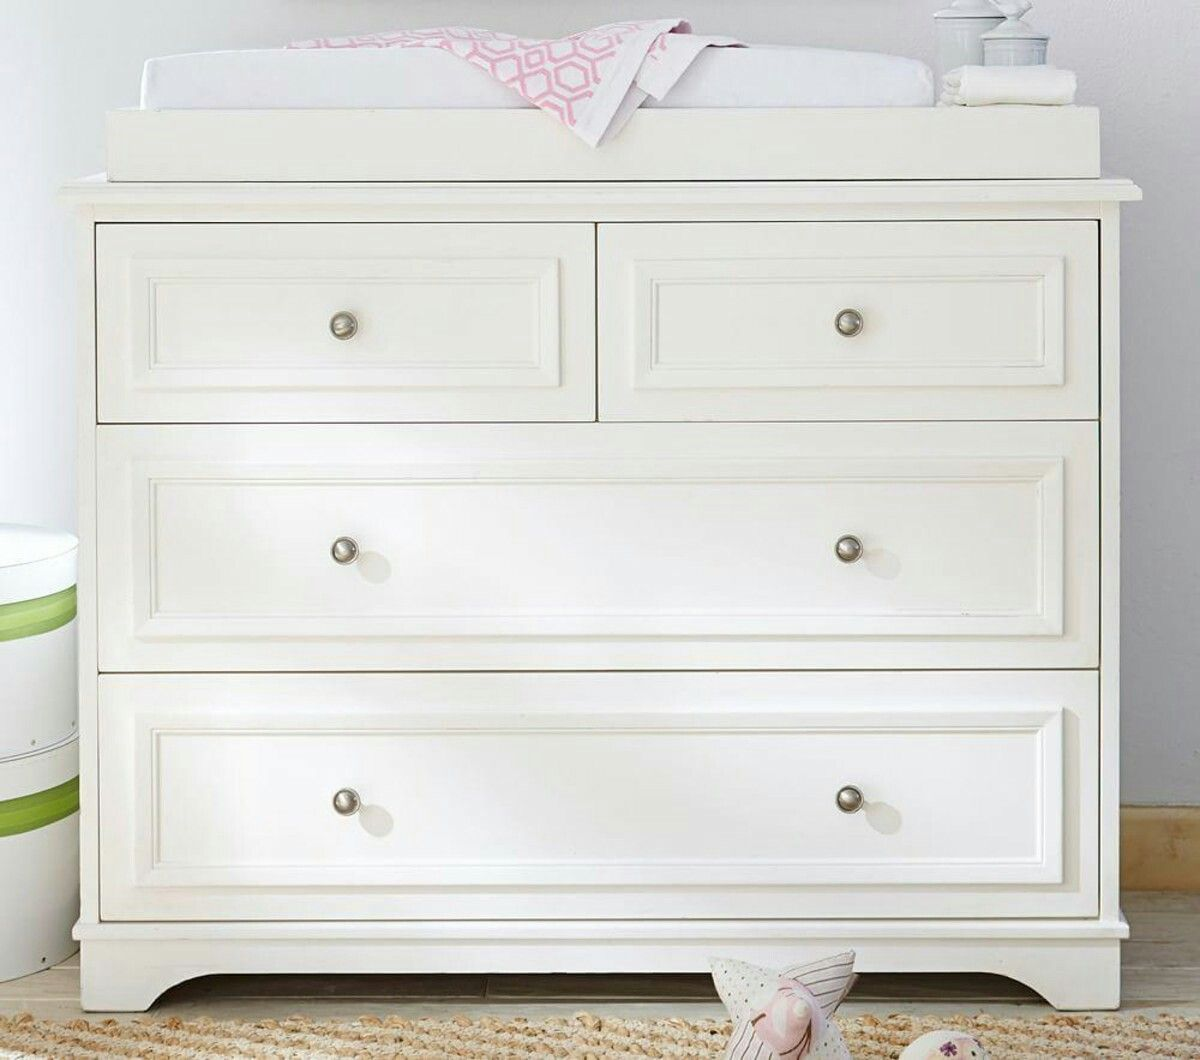 Fillmore Dresser And Topper From Pottery Barn Kids